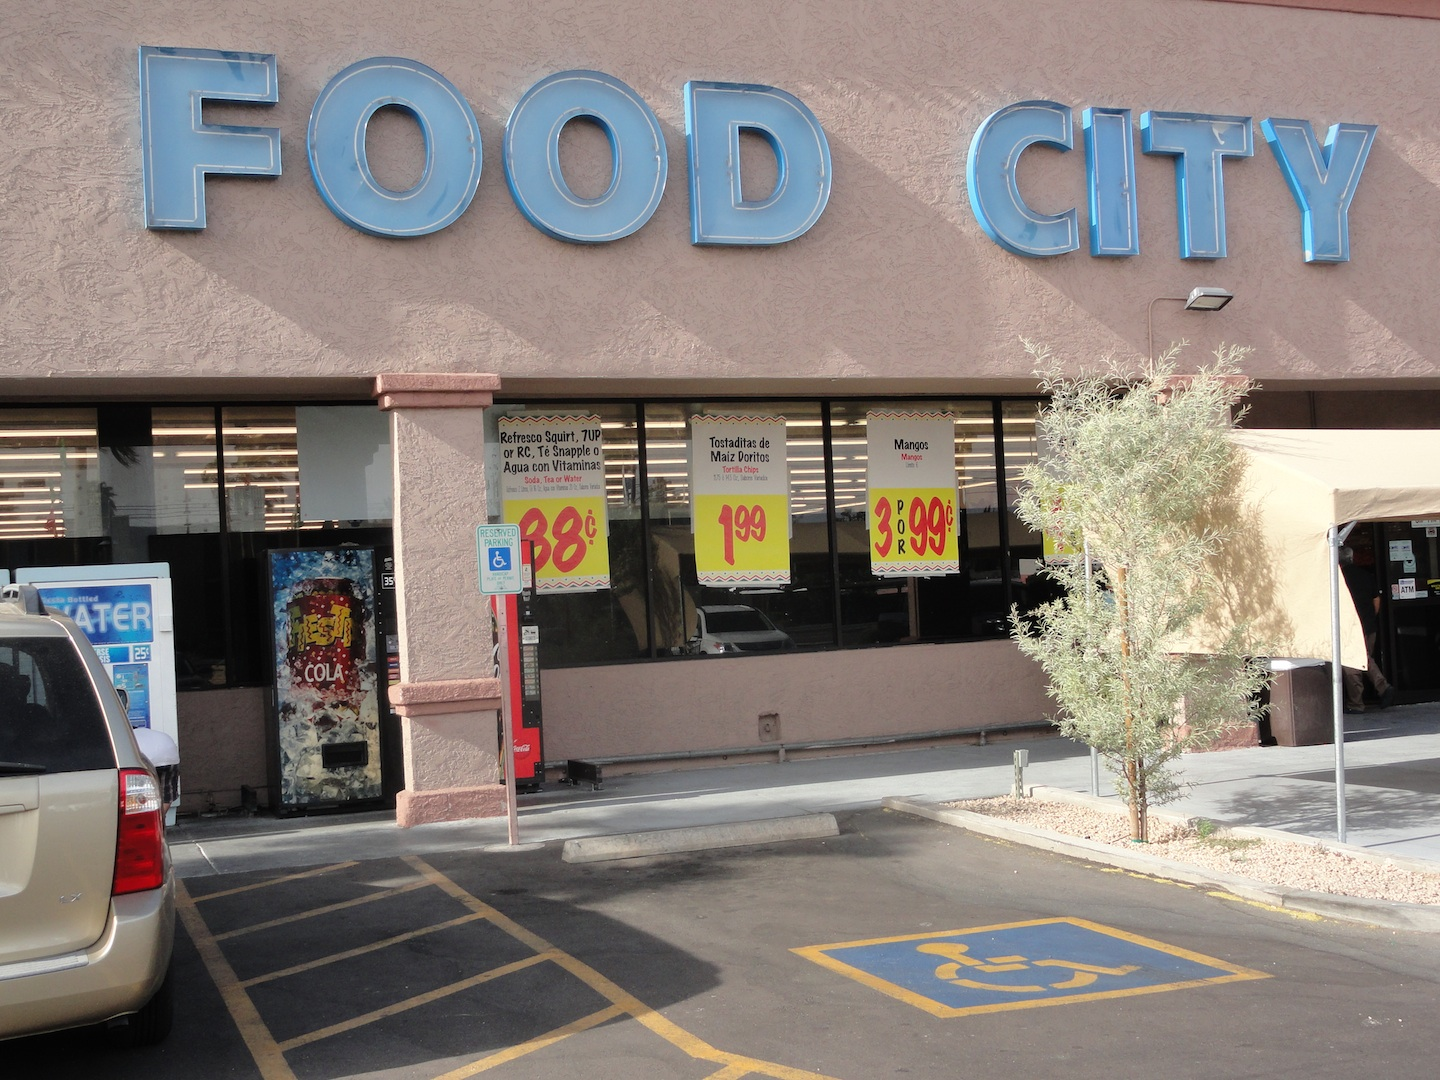 a people u0026 39 s guide to maricopa county  food city